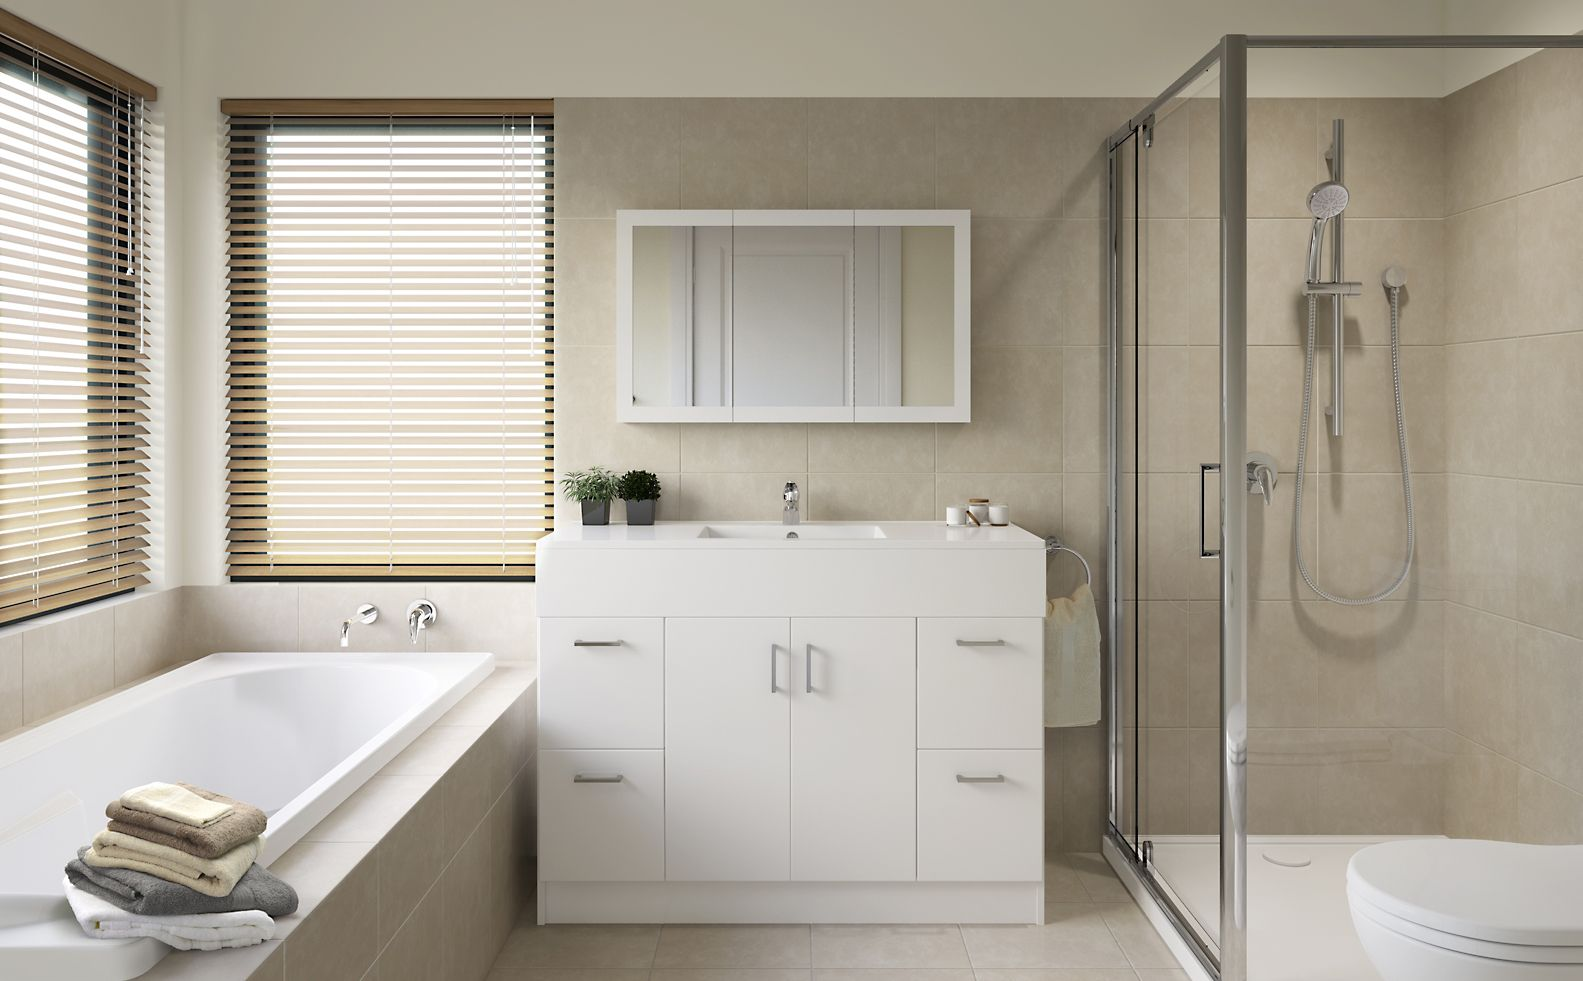 Bathroom Inspiration harmony - bathroom inspiration package at bunnings warehouse